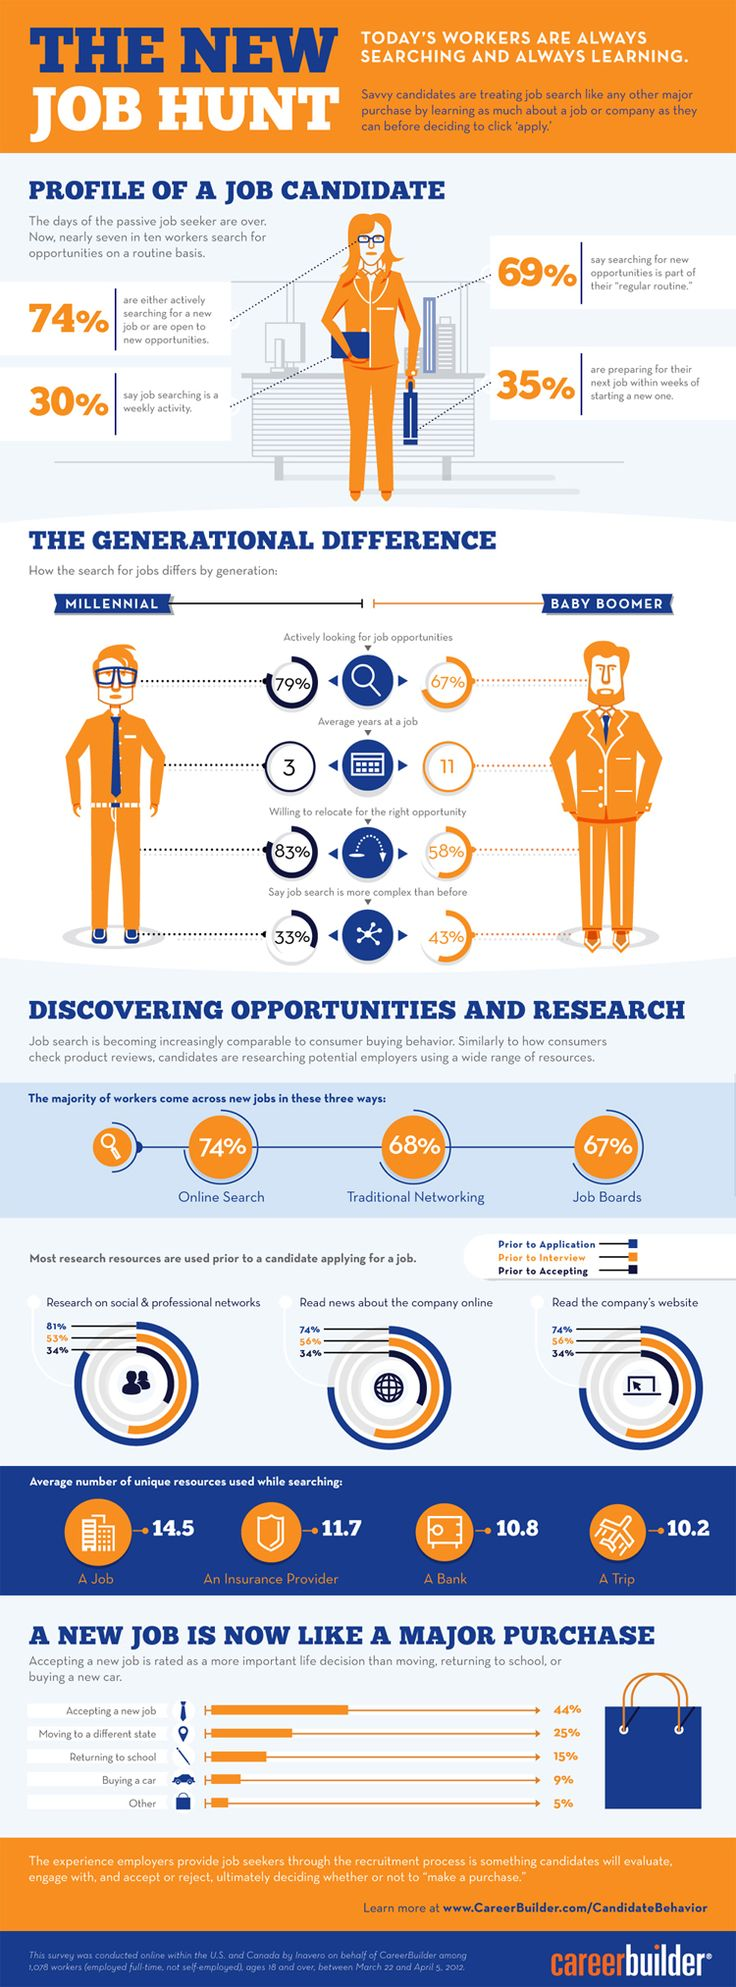 The New #Job Hunt: Today's Workers Are Always Searching and Always Learning #careers